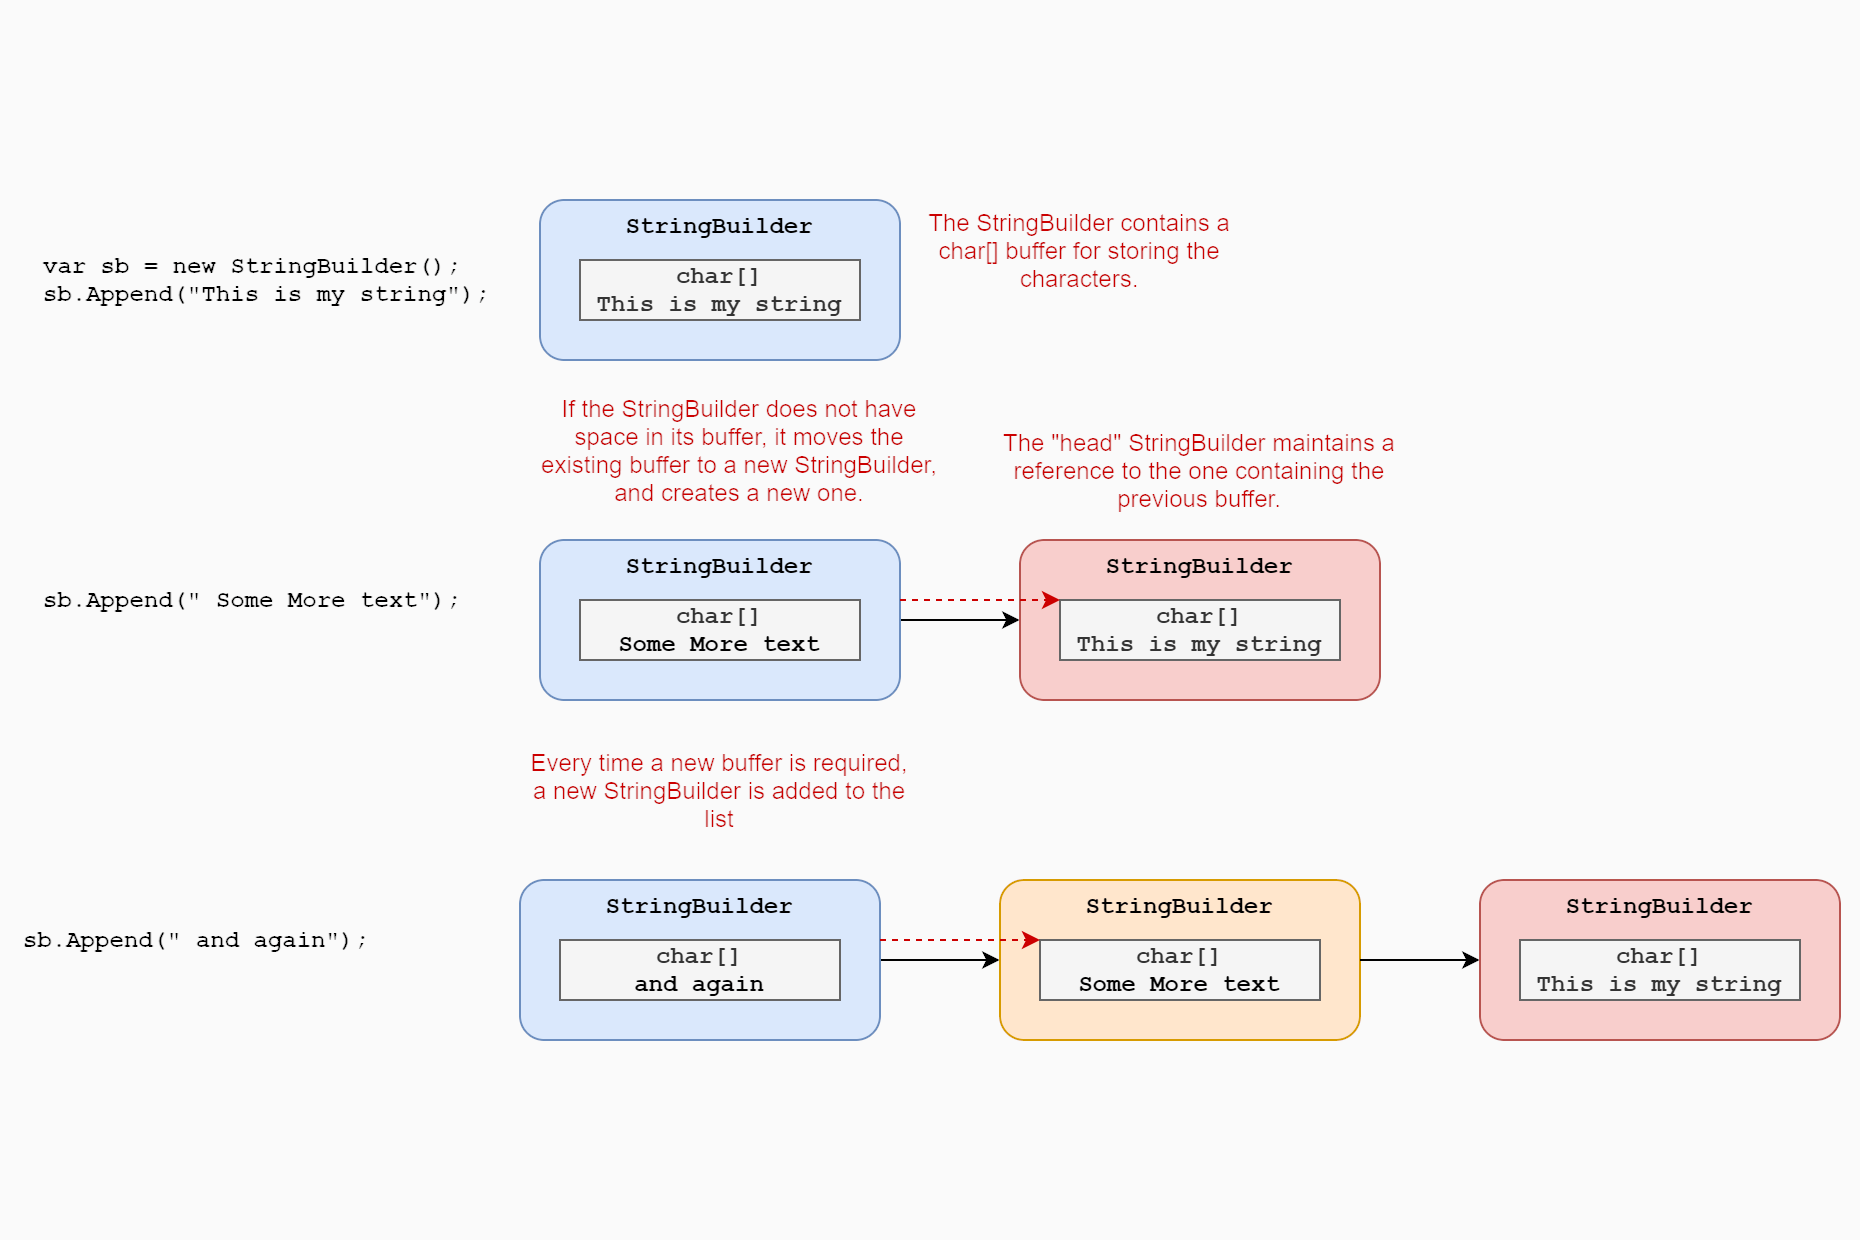 The overall design and a first look at the internals: A deep dive on StringBuilder - Part 1